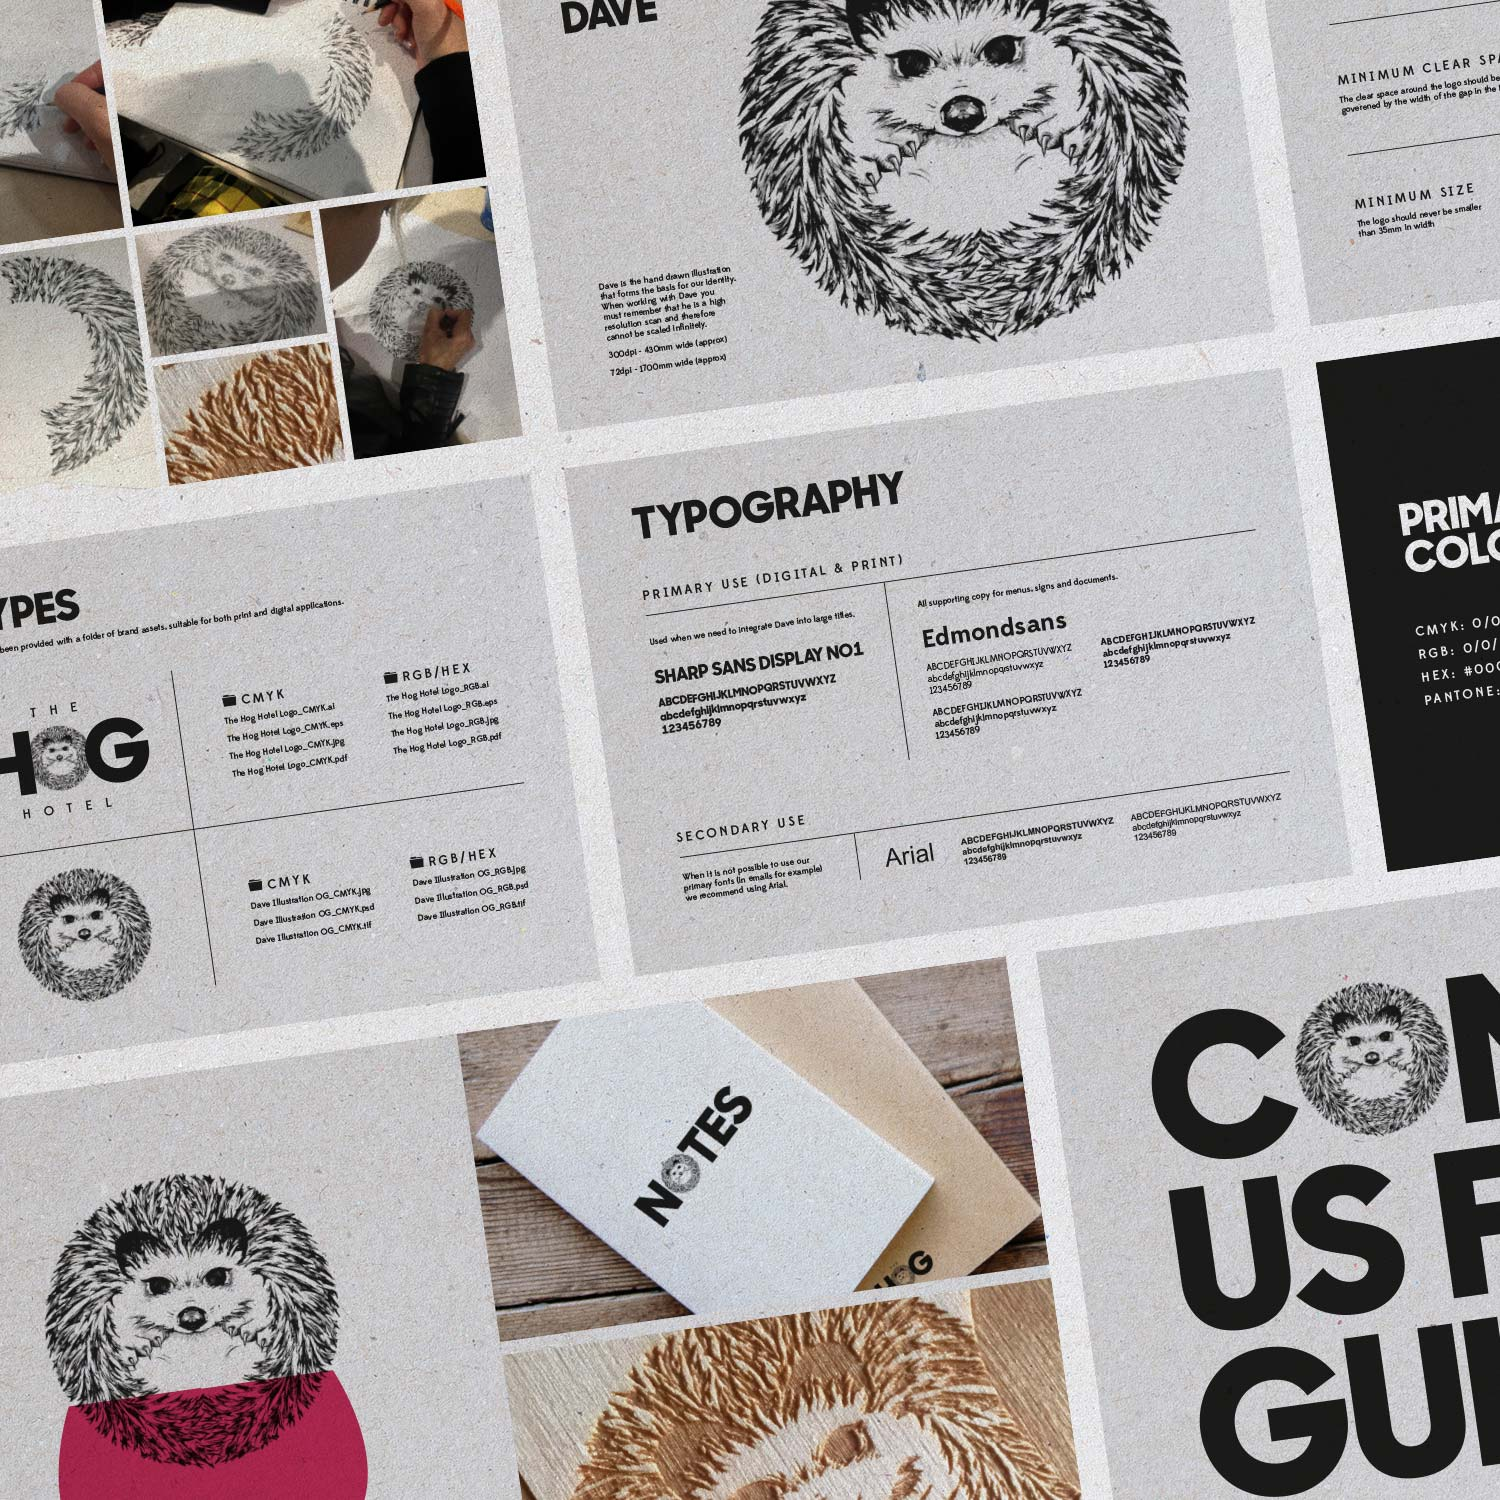 The Hog brand guidelines spread